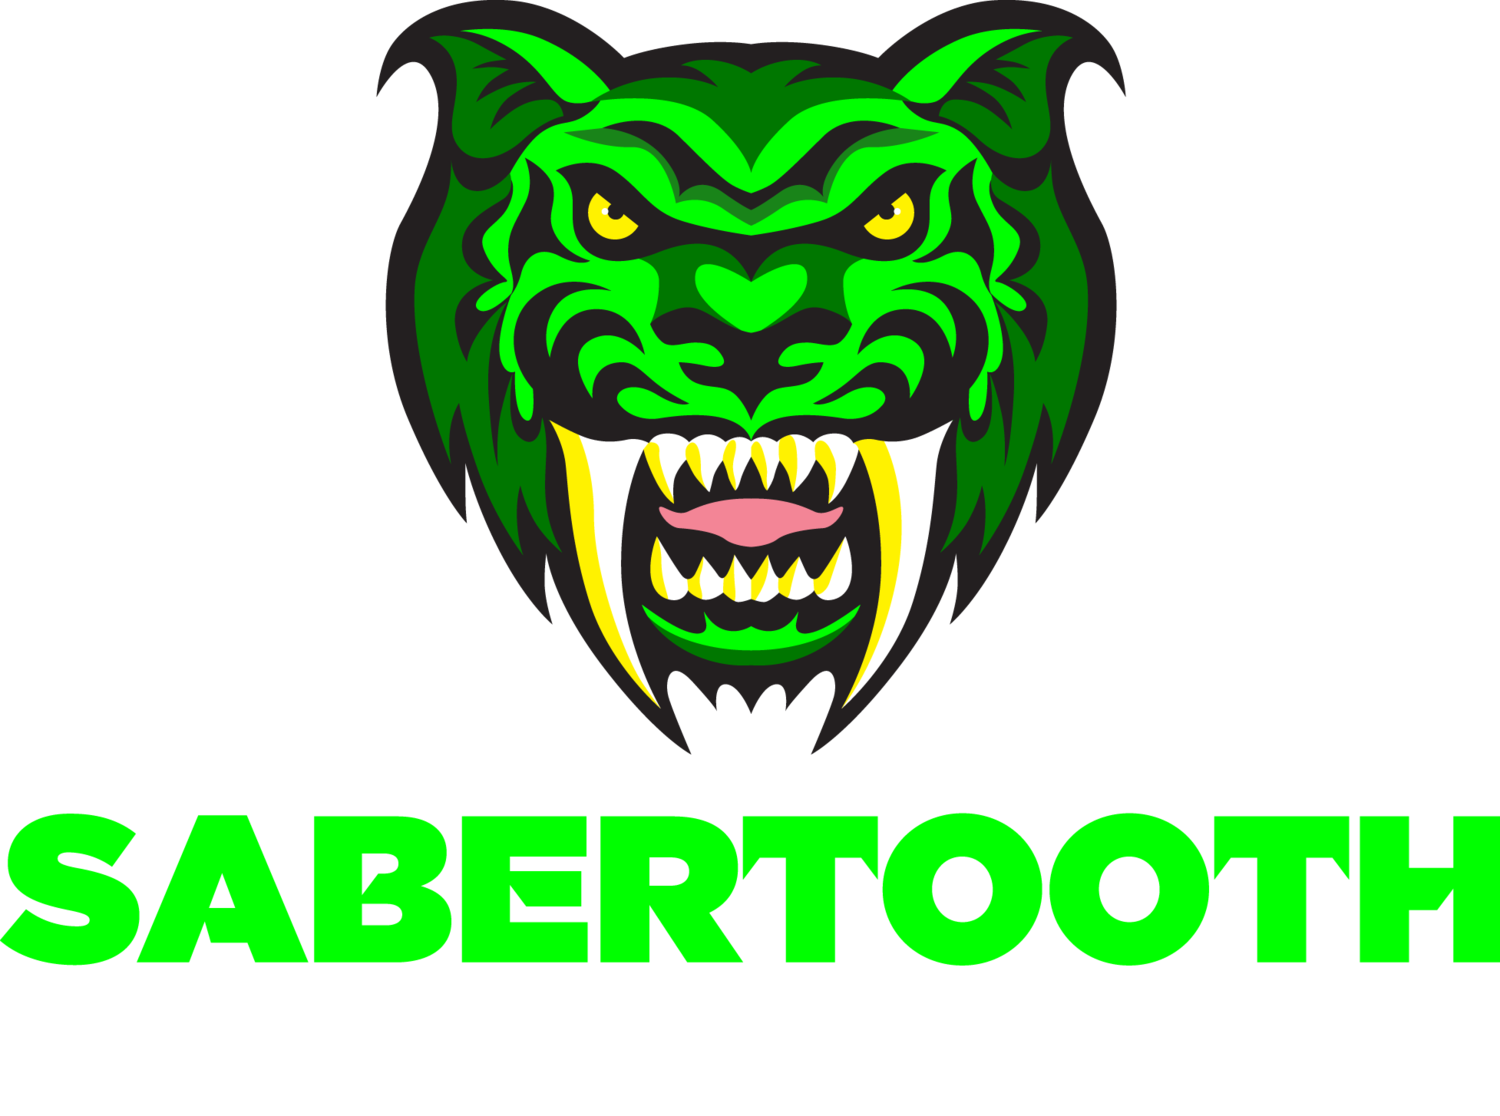 Sabertooth Taggers